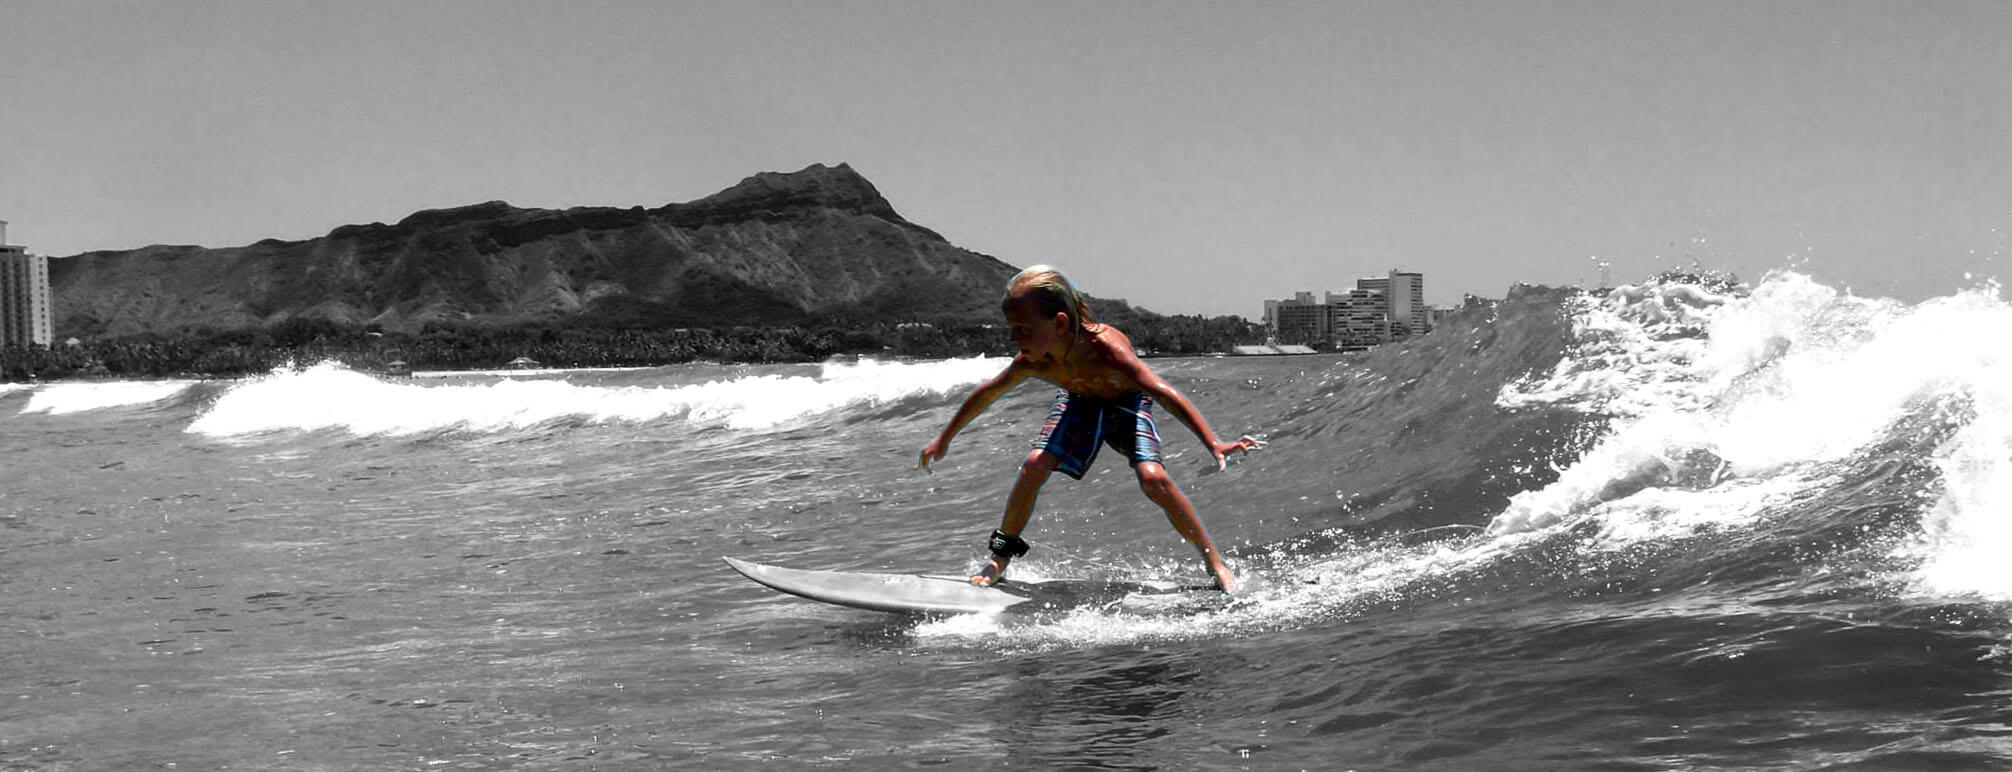 5 year old surfing waikiki shortboard